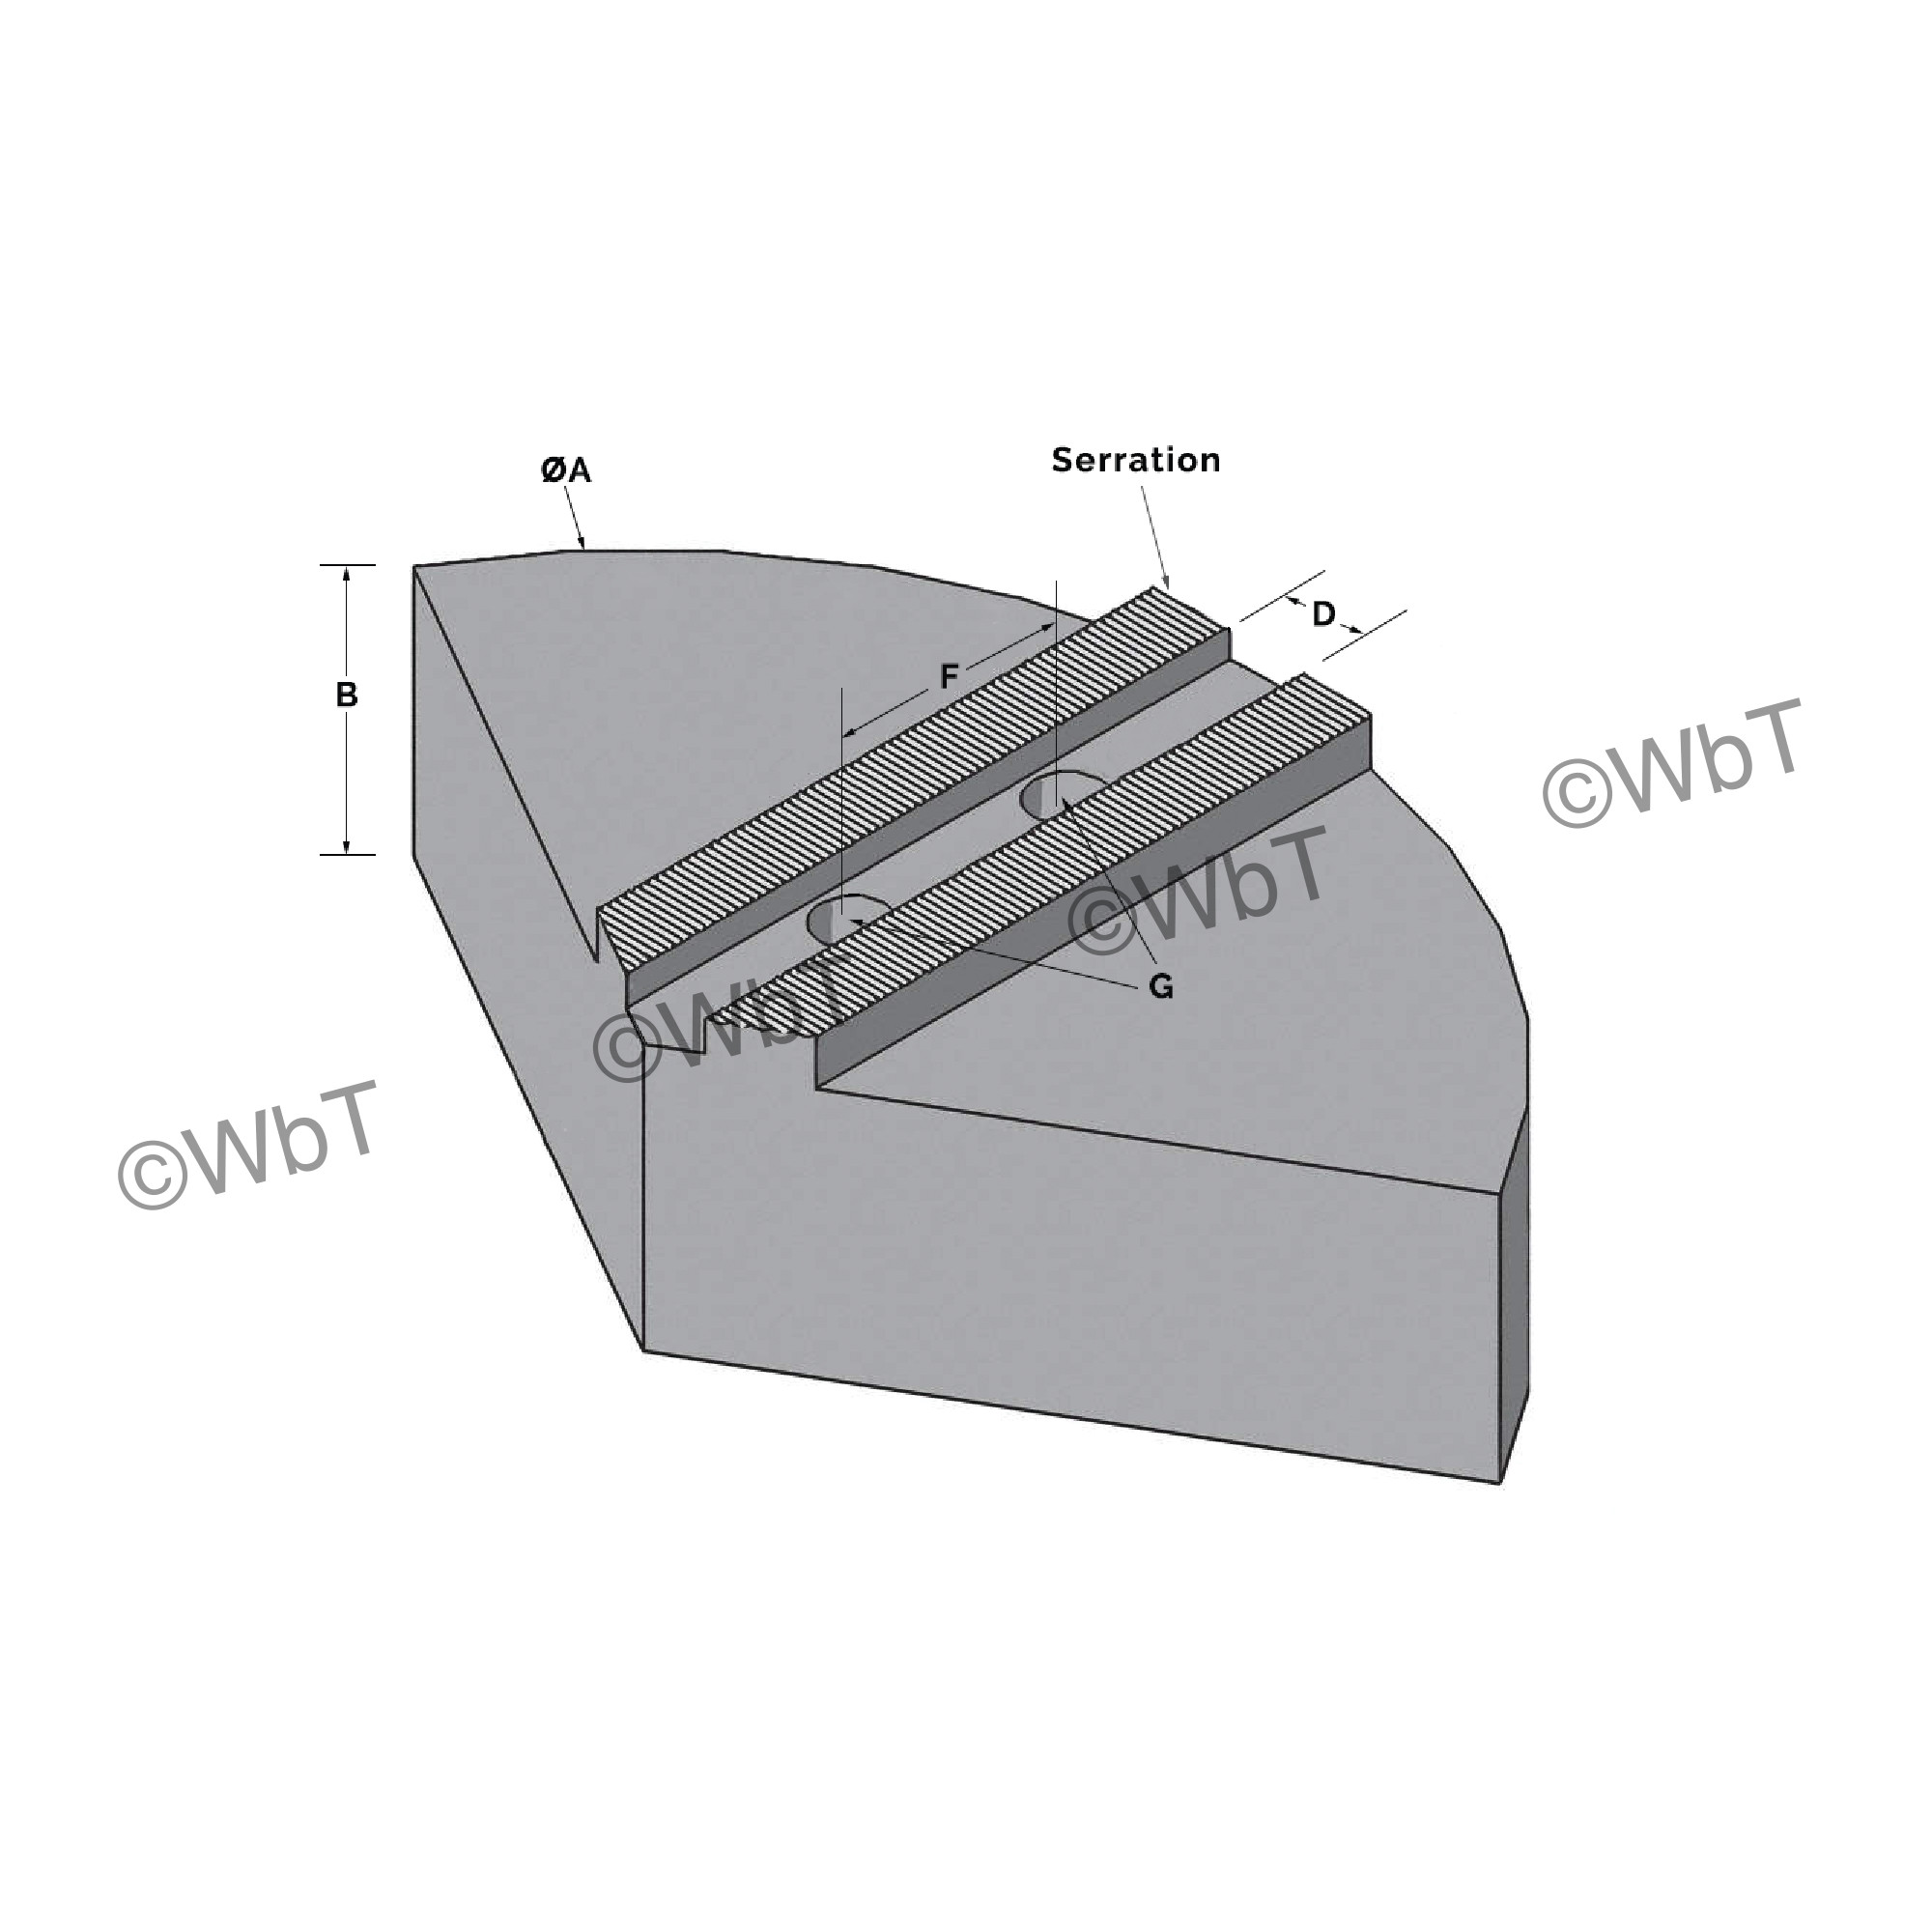 1.5mm x 60° Serrated Pie Jaws - Style Q